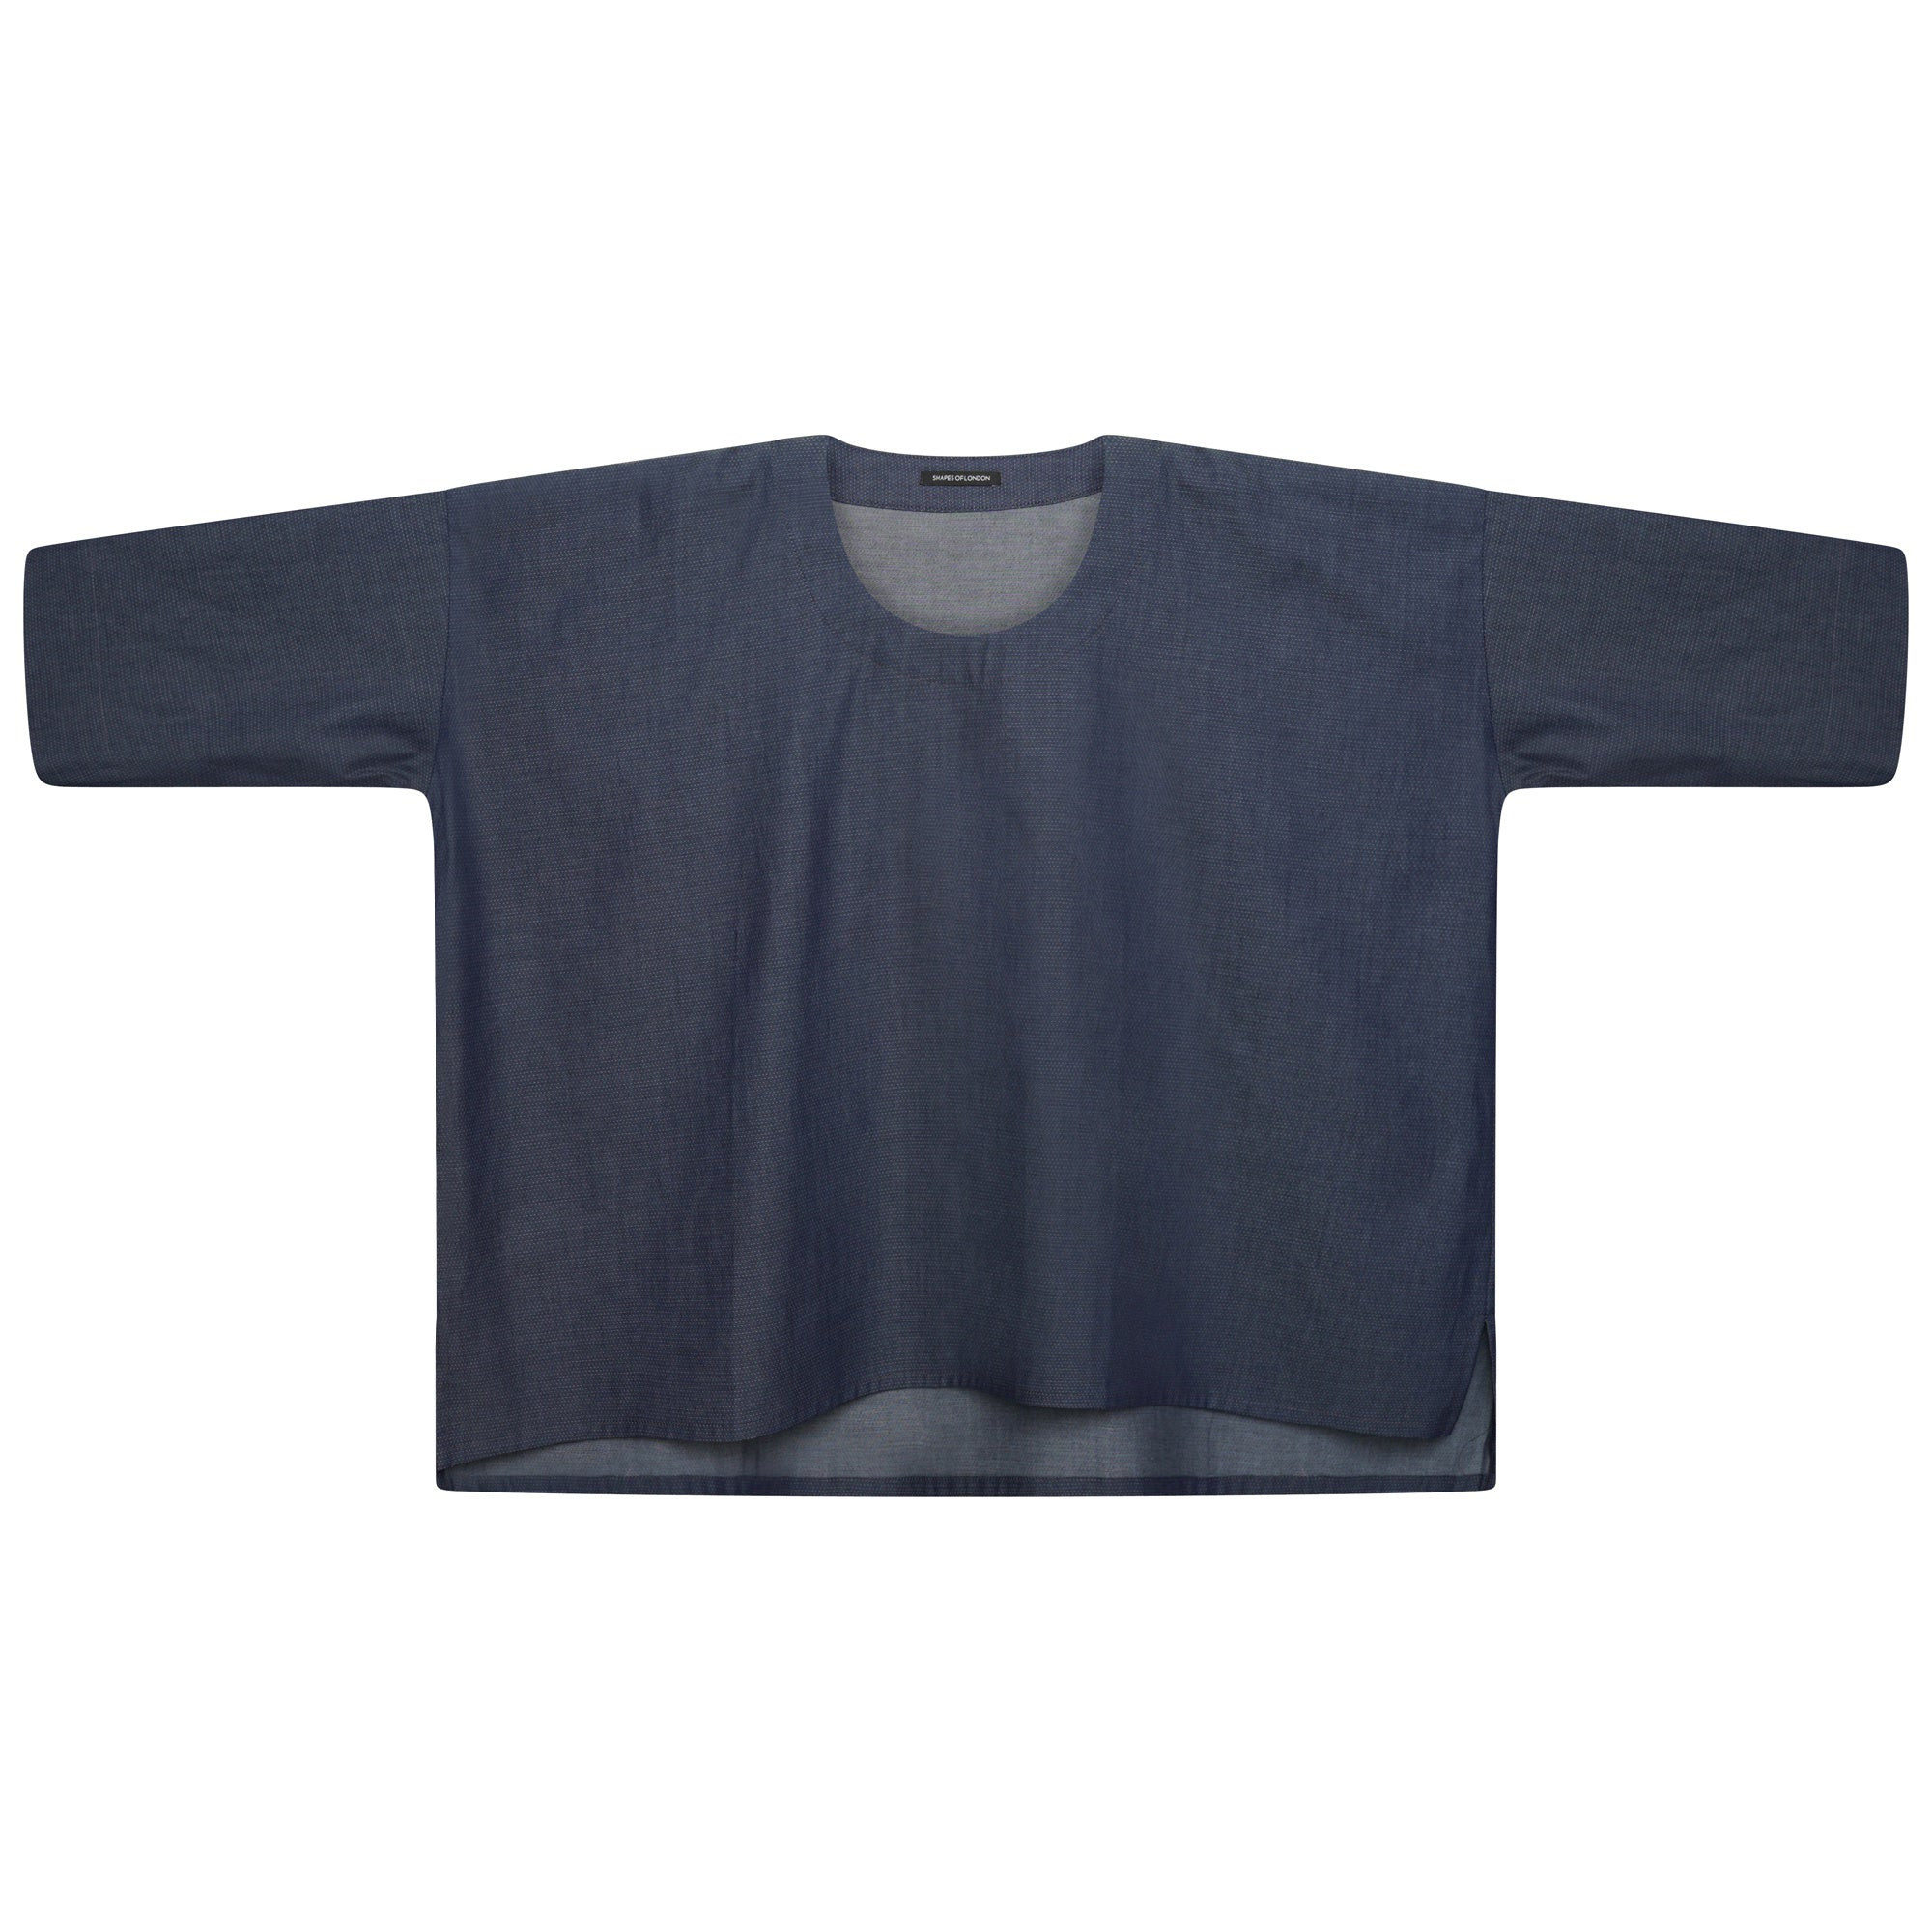 WOVEN MICRODOT DENIM OVERSIZED TOP